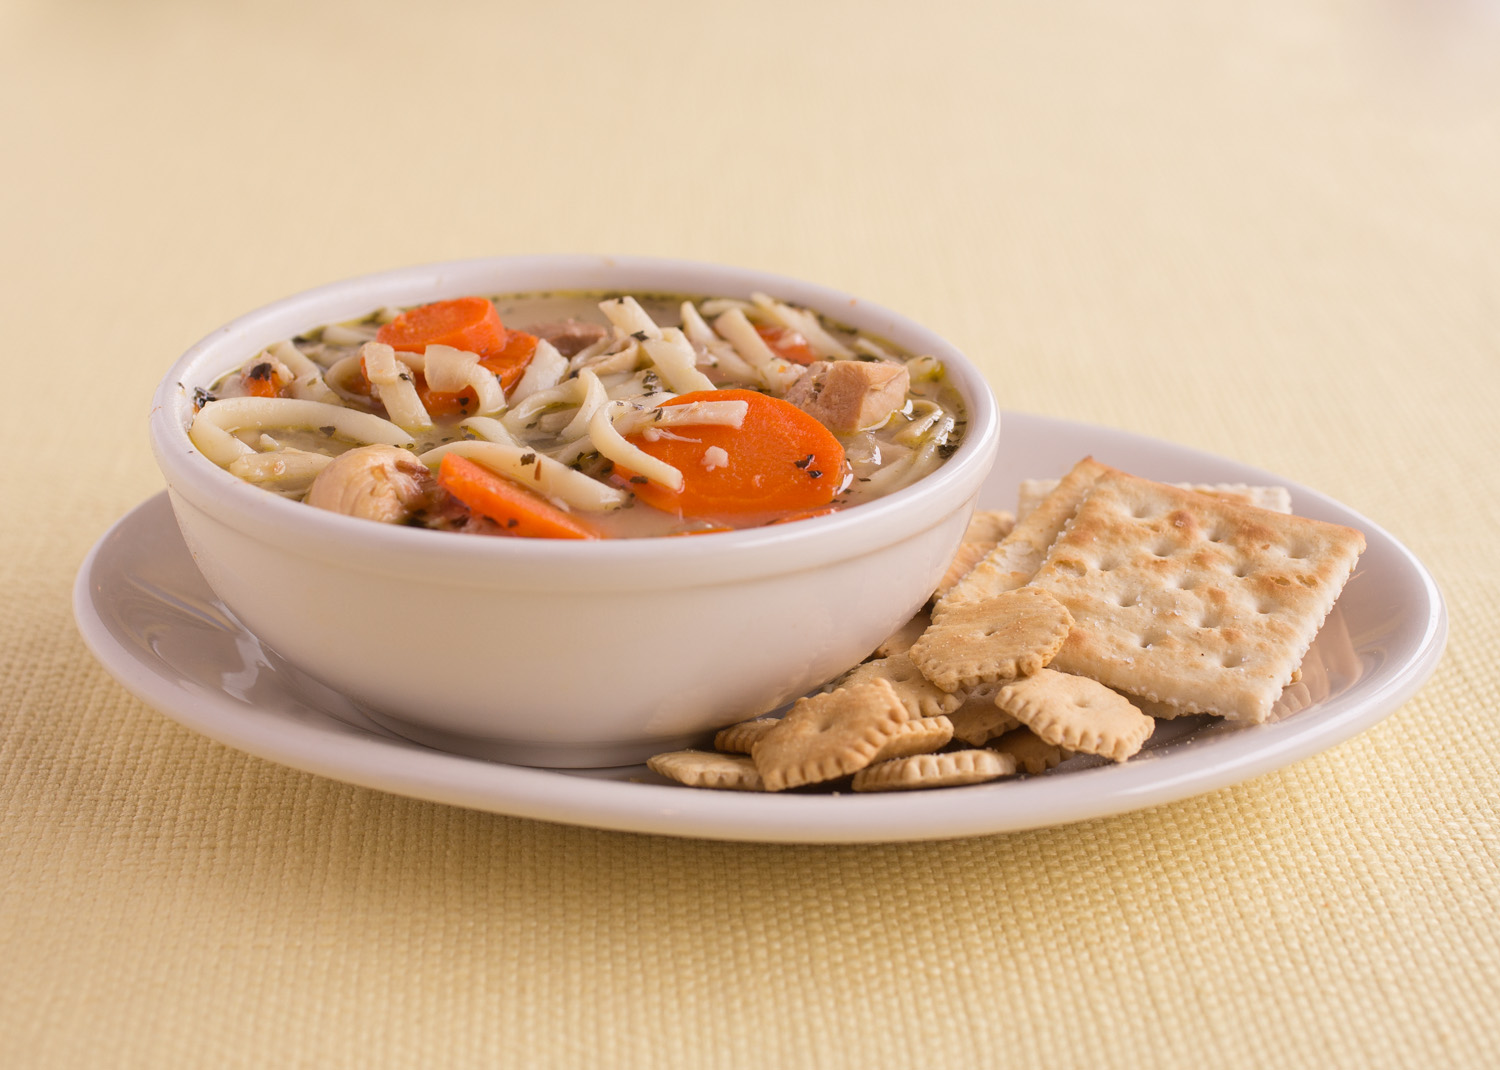 Chicken Soup - classic chicken soup with rice or noodles